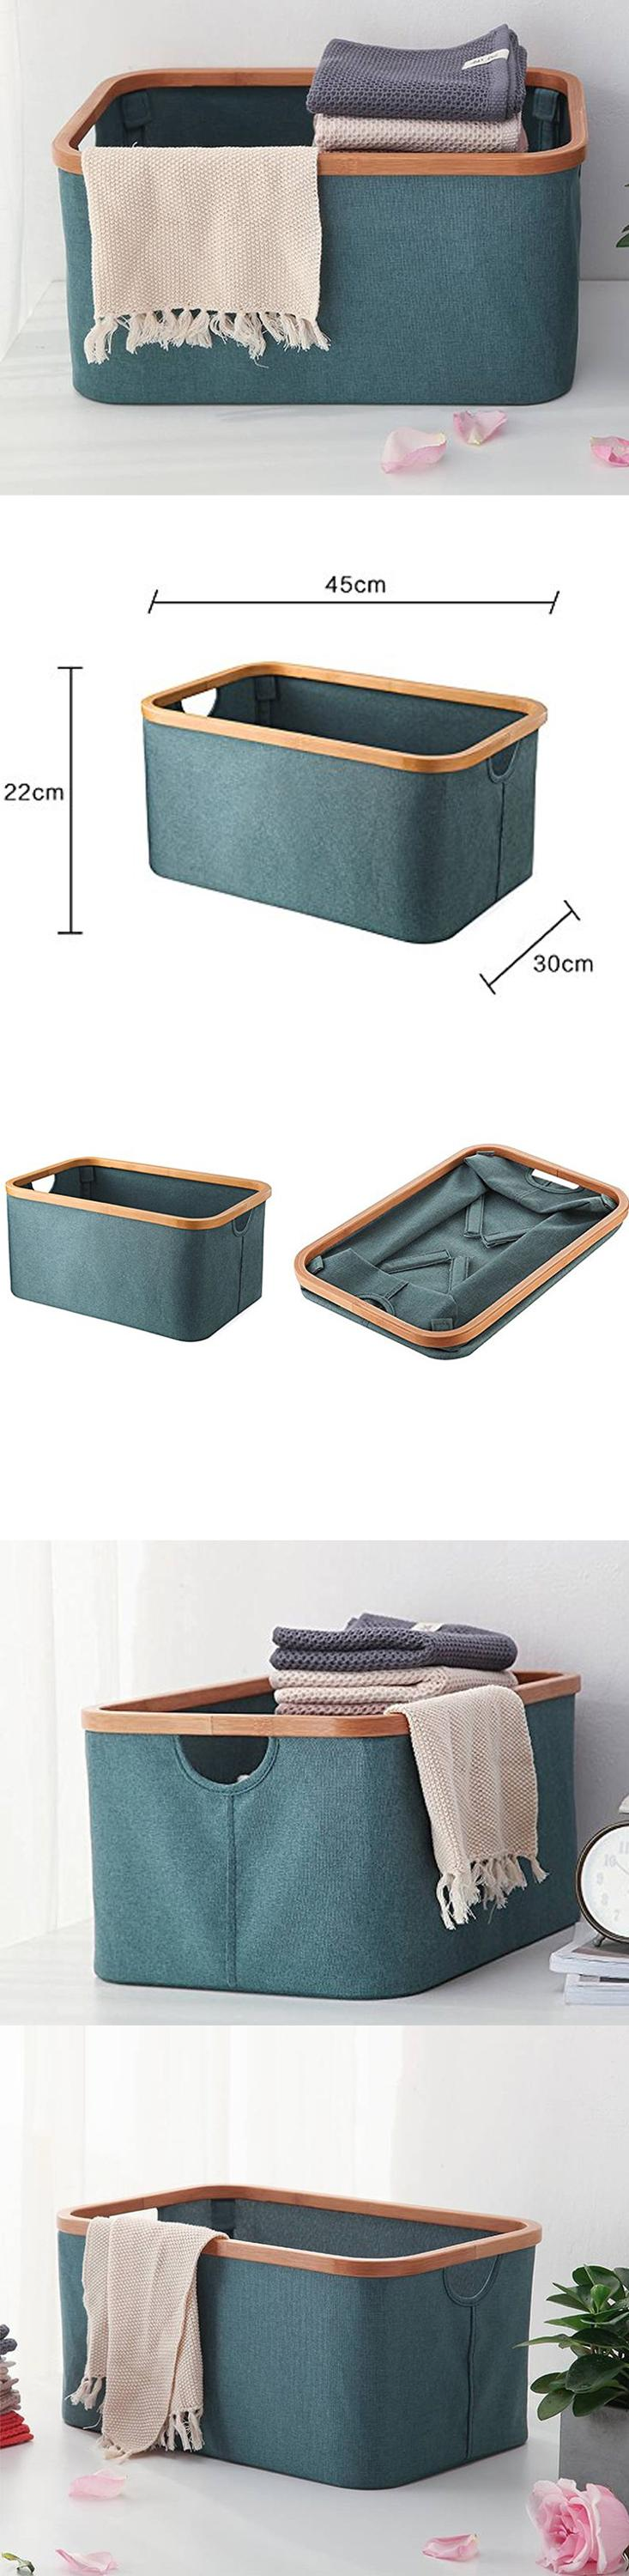 Natural Bamboo Blue Canvas Fabric Foldable Collapsible Storage Bin Basket For Home